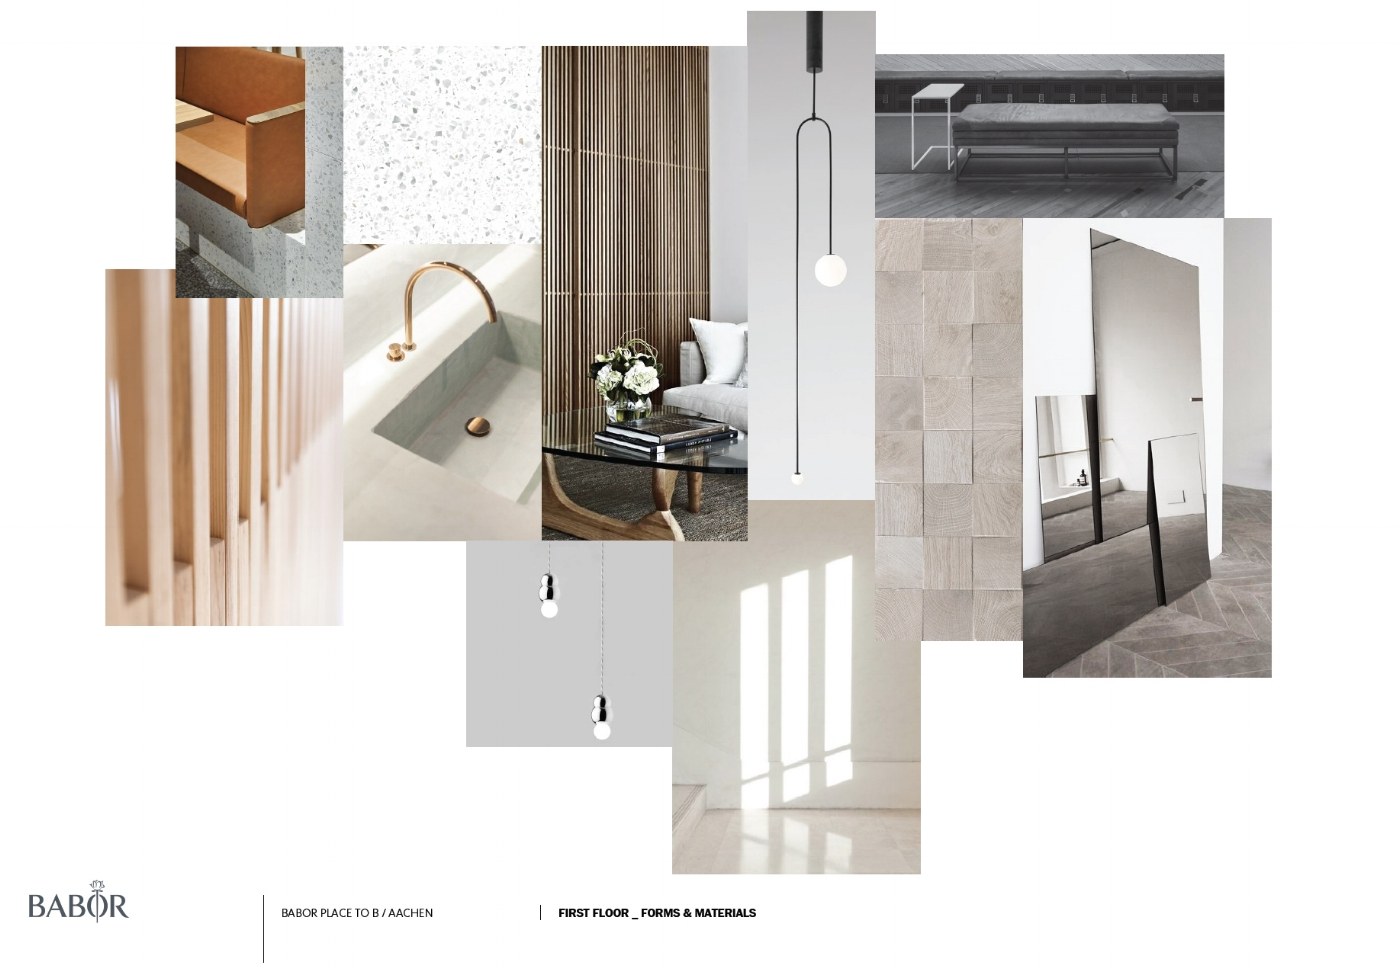 for the first floor treatment vabins / design intentions / materials & forms